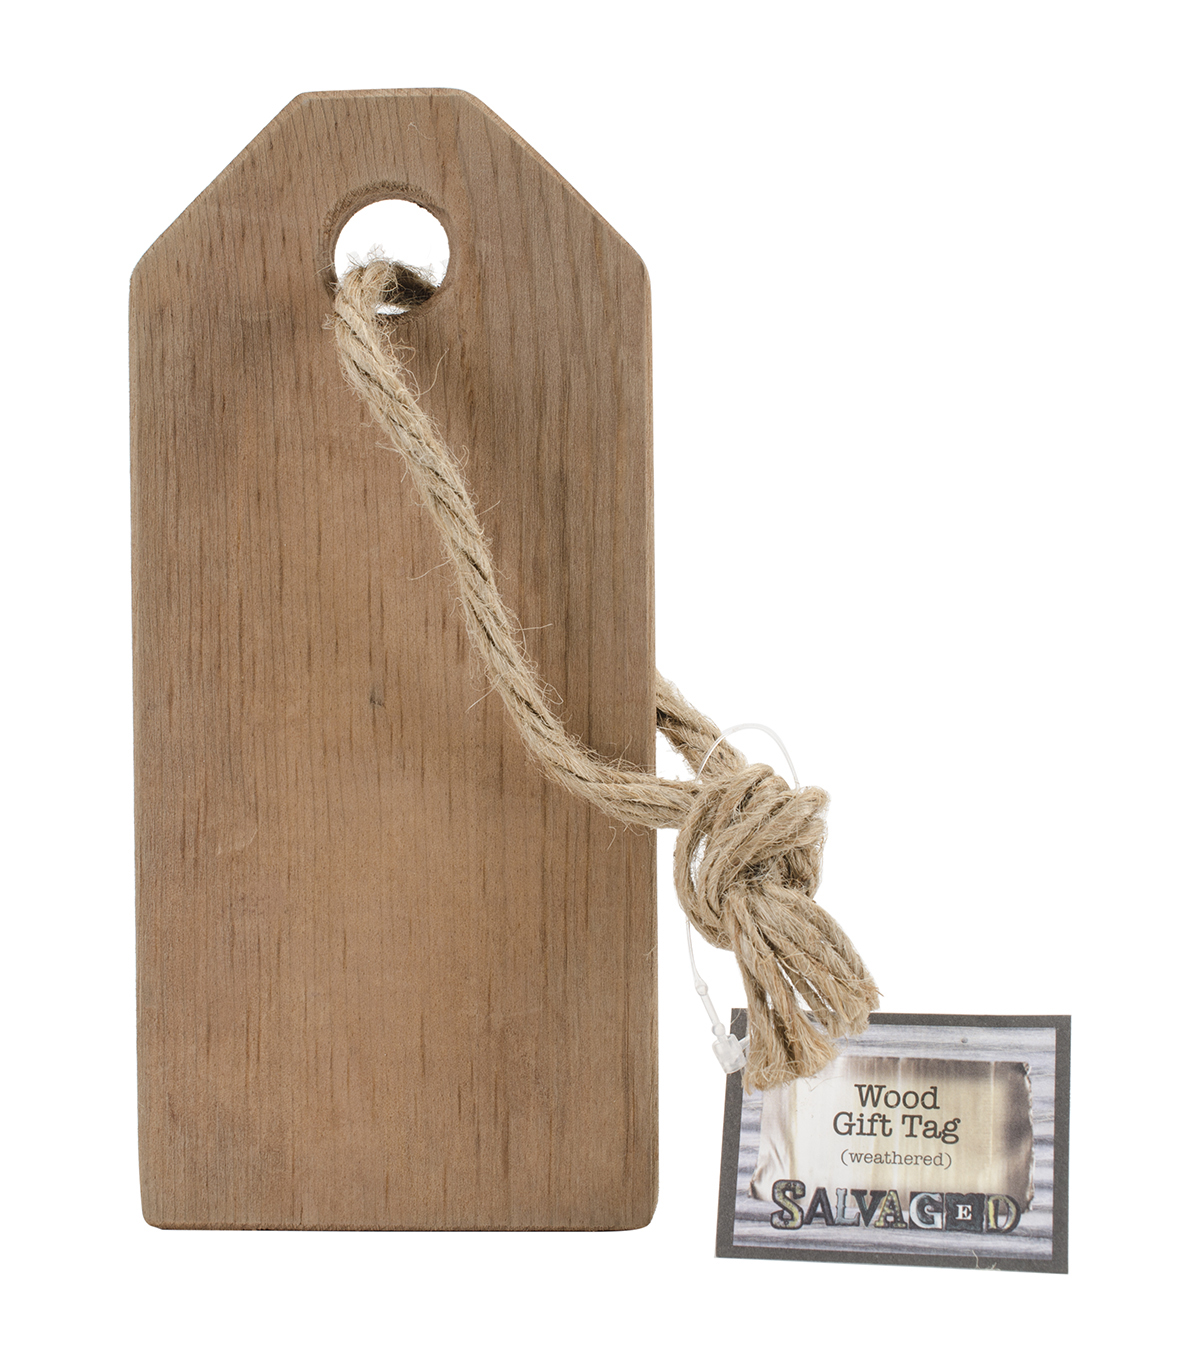 Salvaged Wood Weathered Wood Gift Tag 7\u0027\u0027x3\u0027\u0027x0.5\u0027\u0027